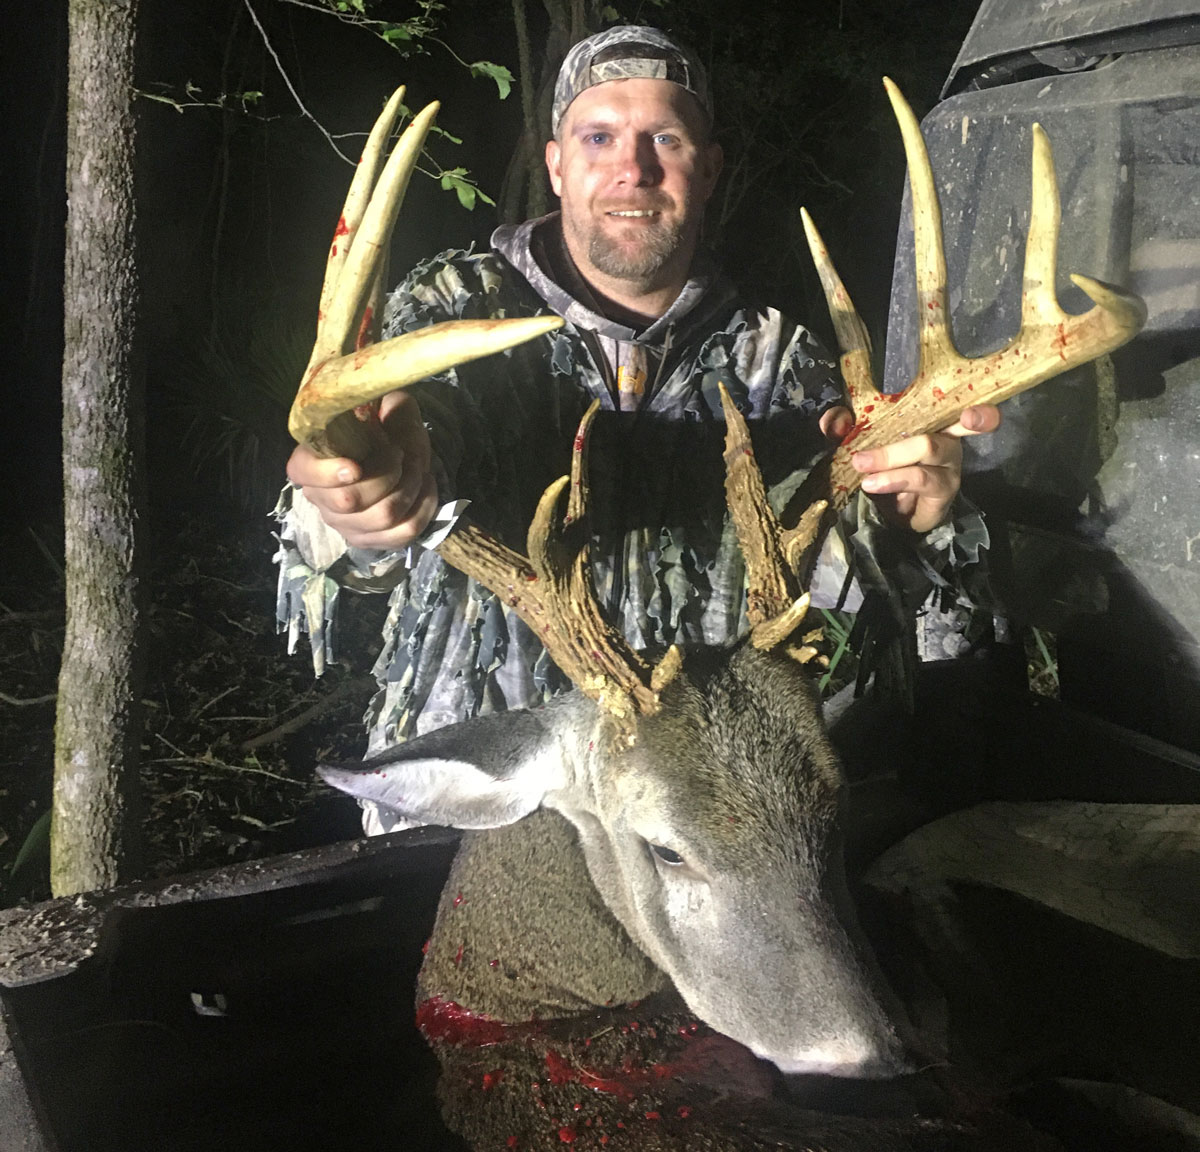 Ben Brallier and his 14-point Concordia Parish buck that scored a whopping 172 5/8 inches of antler.